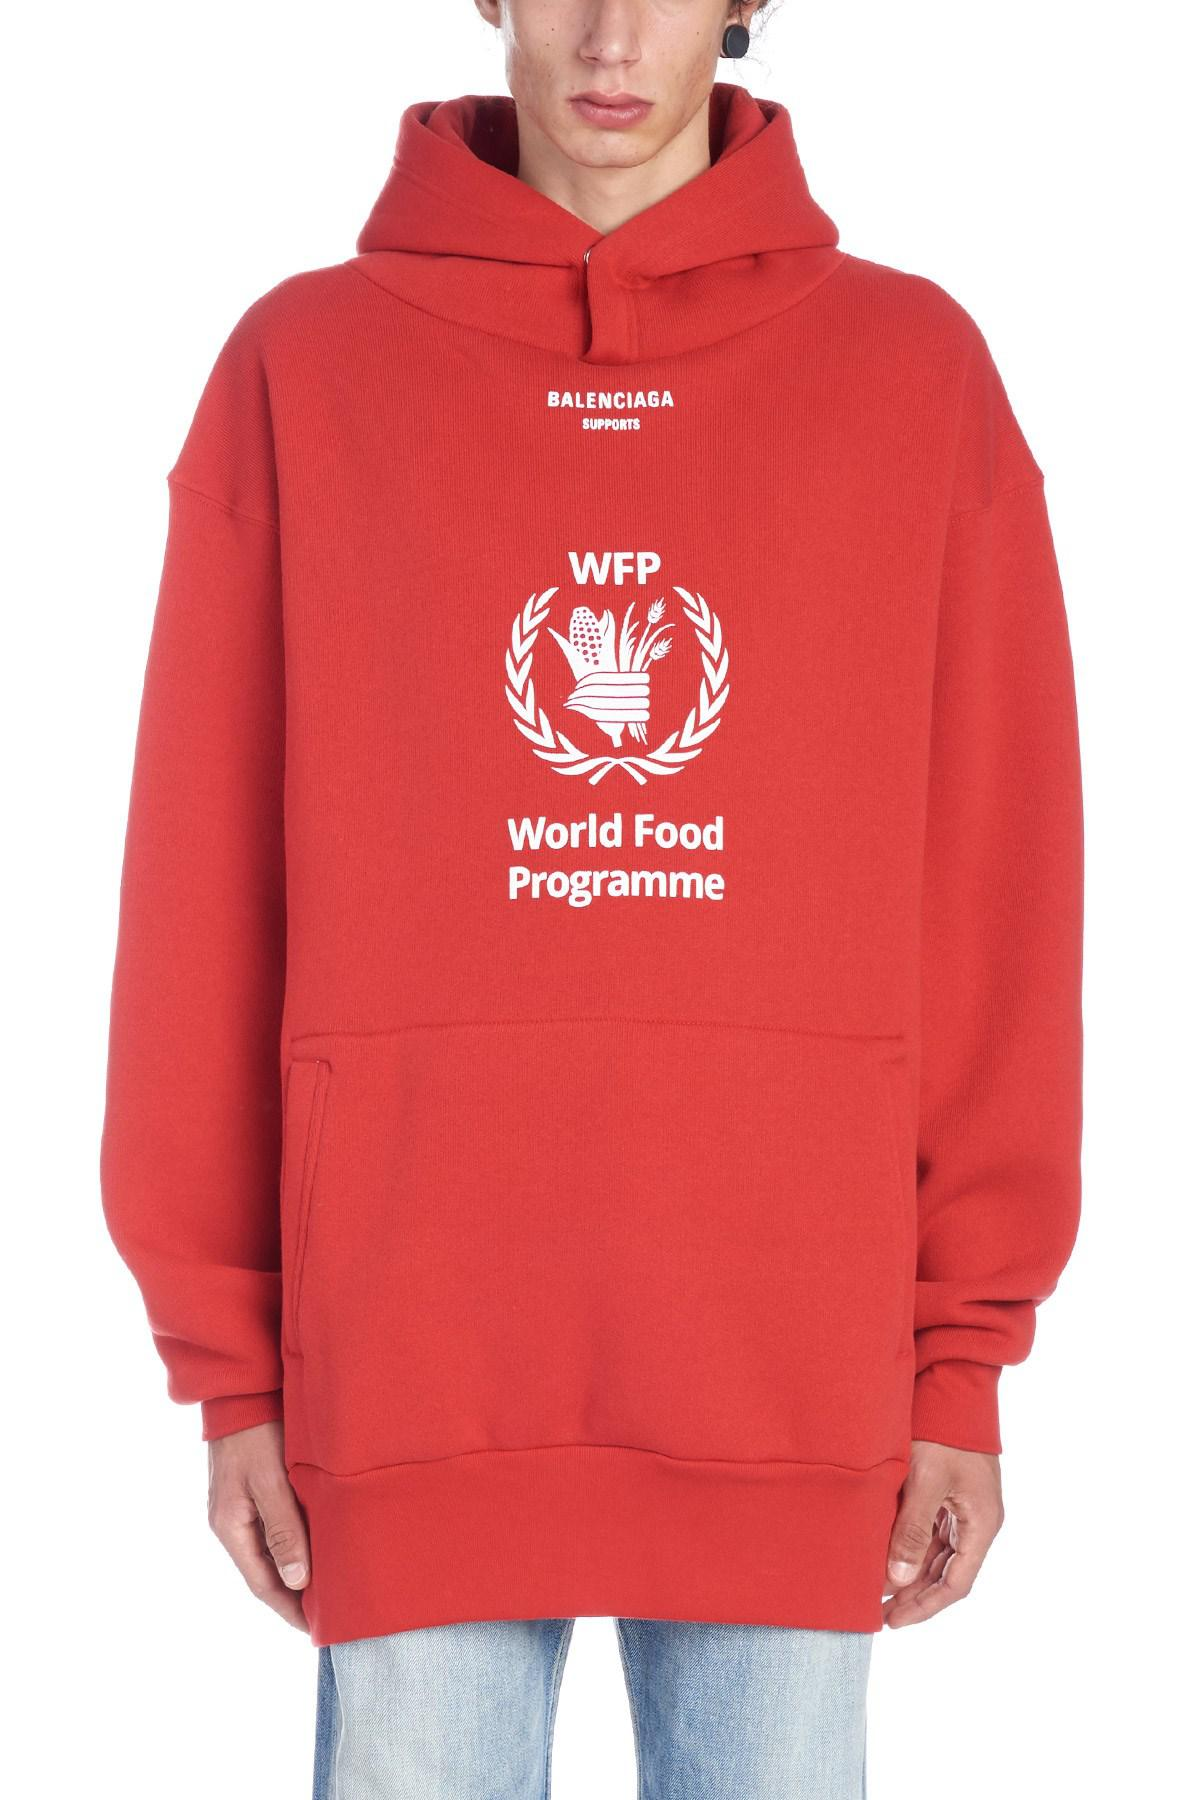 Balenciaga Cotton World Food Programme Hoodie In Red White Red For Men Lyst